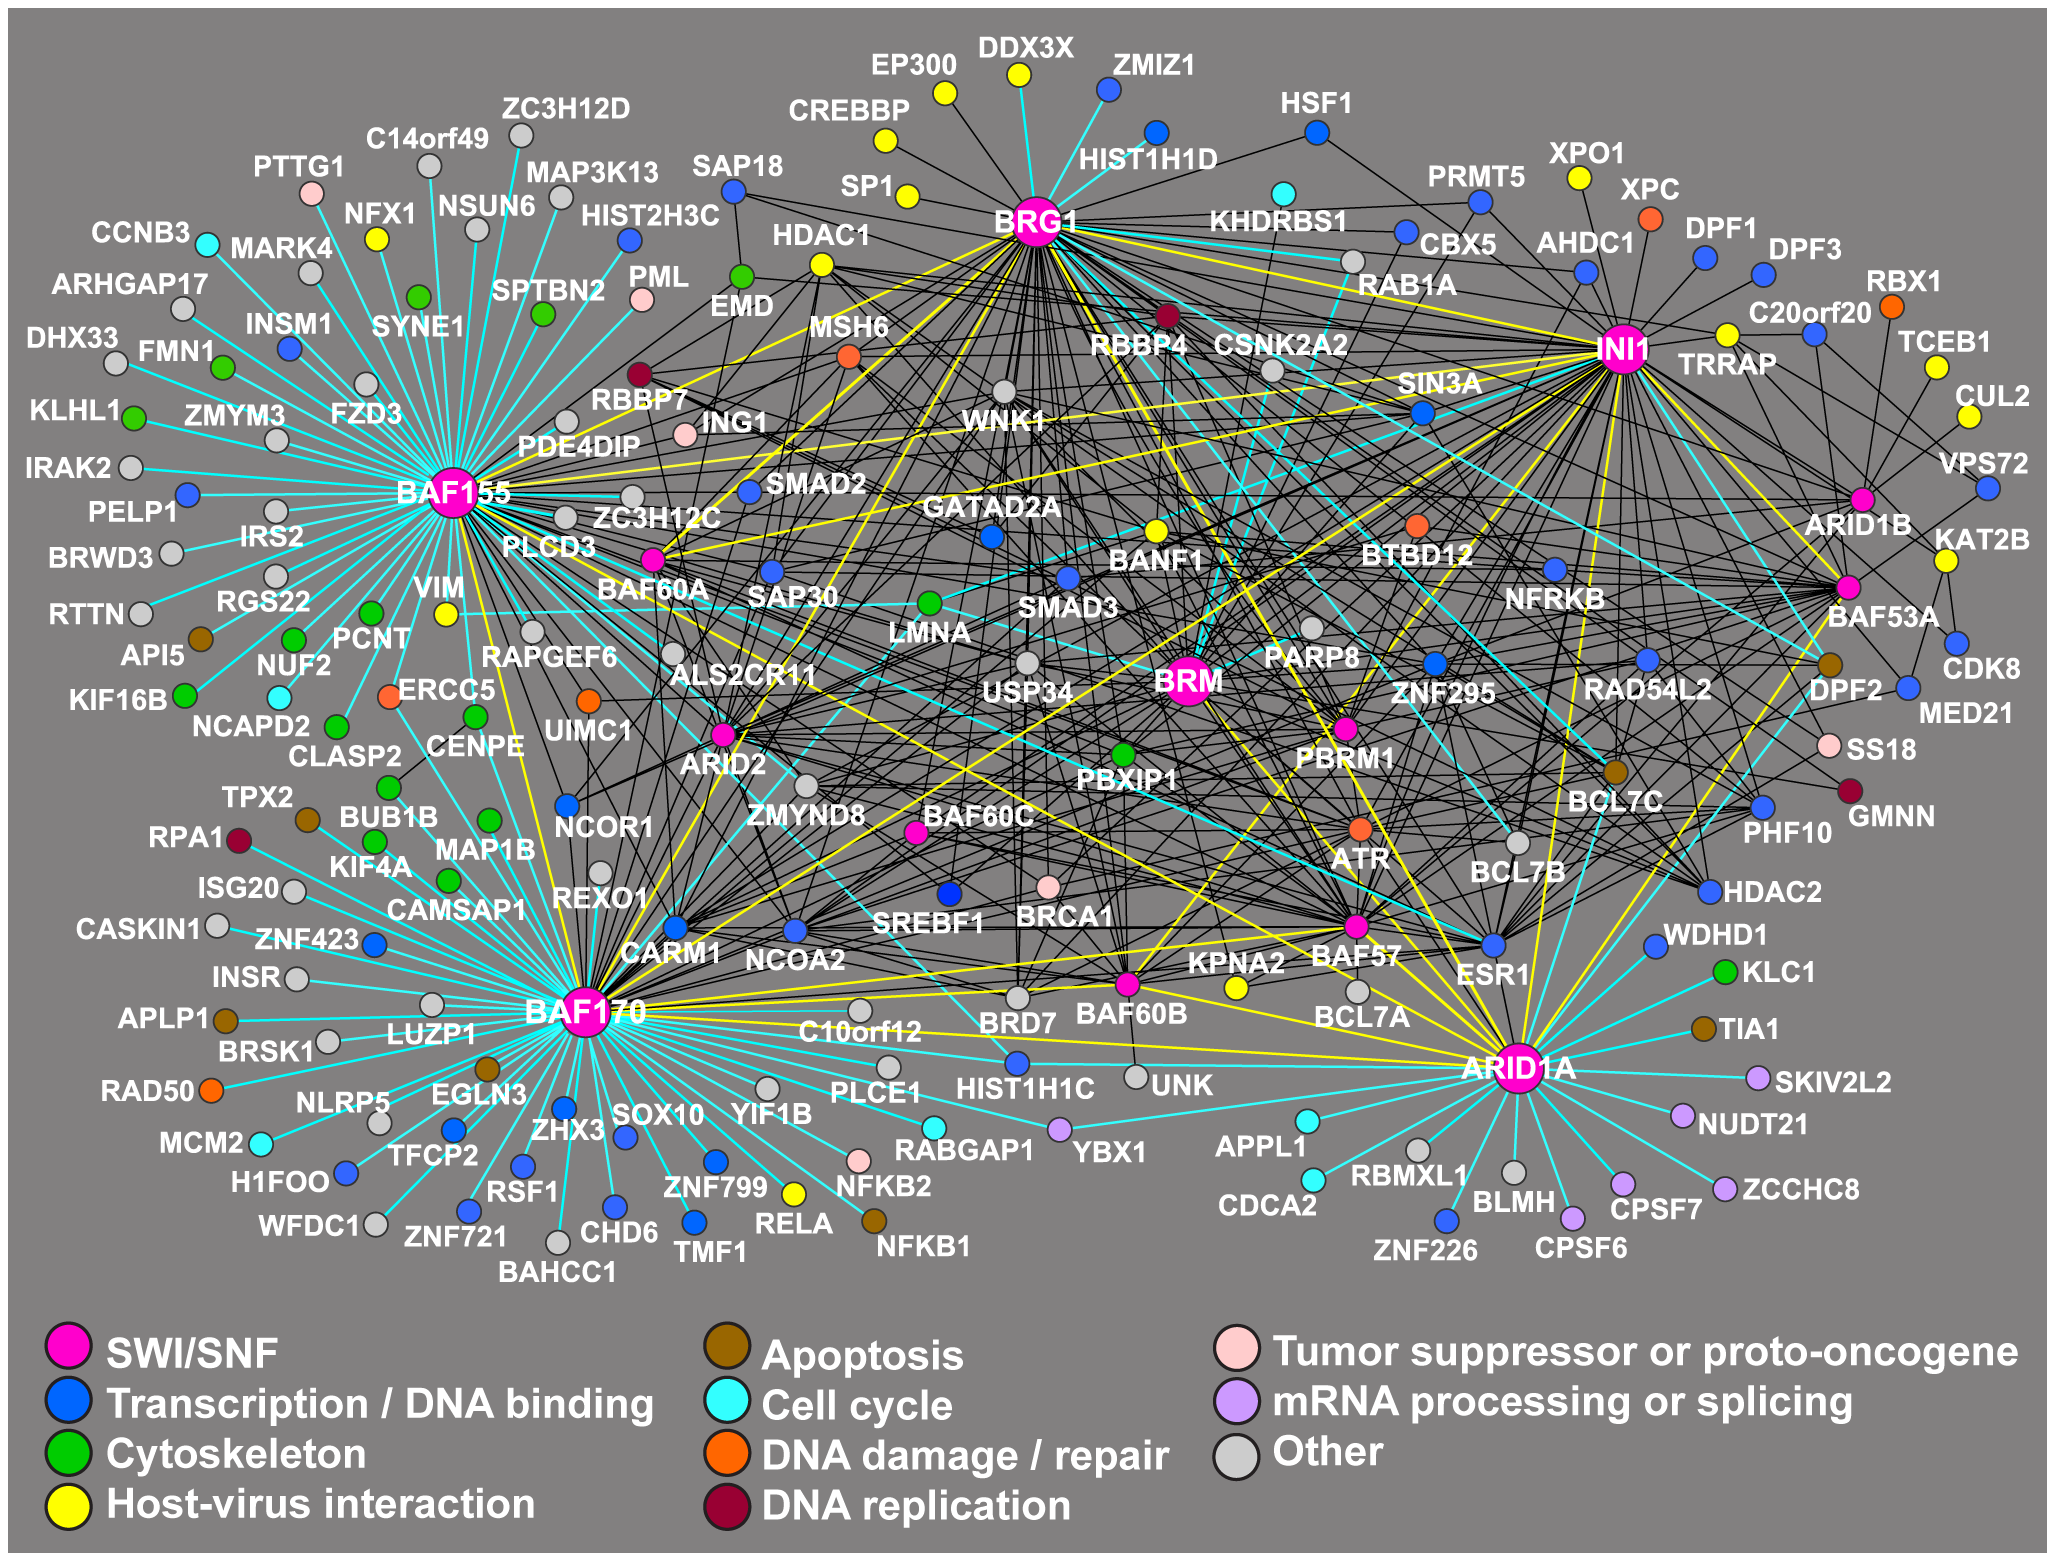 Network of proteins that have been shown to co-purify with SWI/SNF factors.